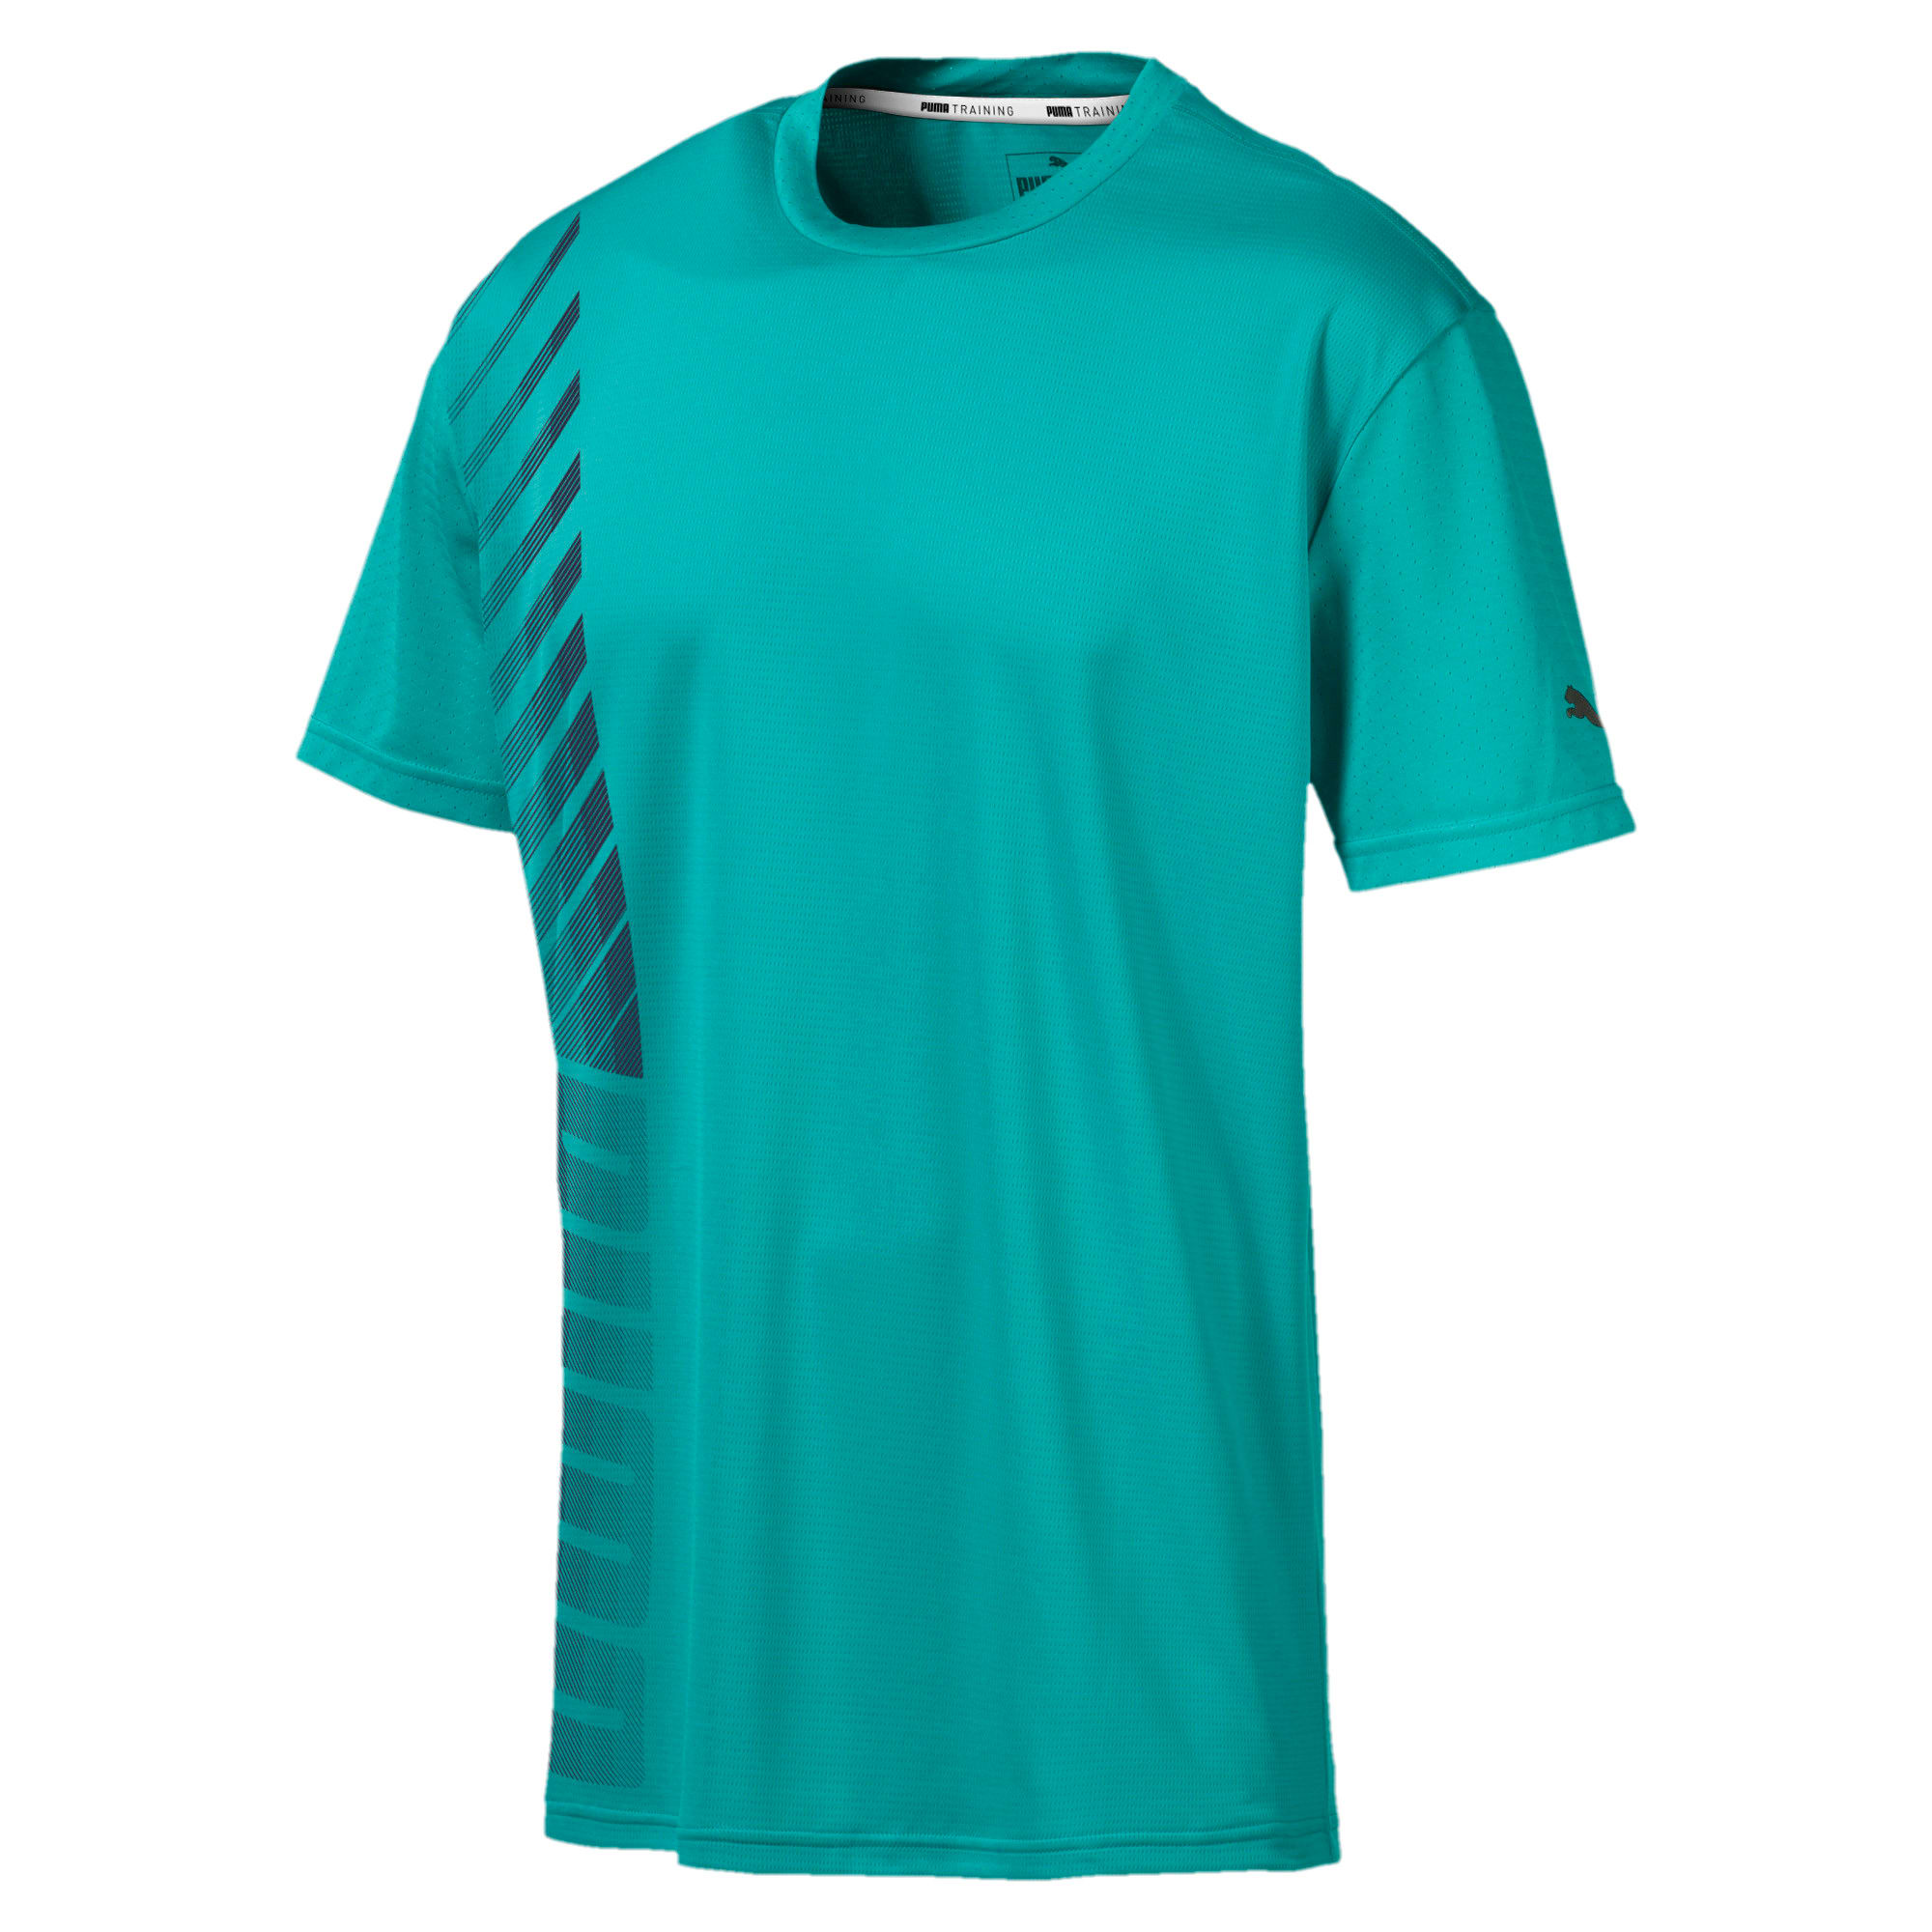 Thumbnail 4 of T-Shirt Collective pour homme, Blue Turquoise, medium